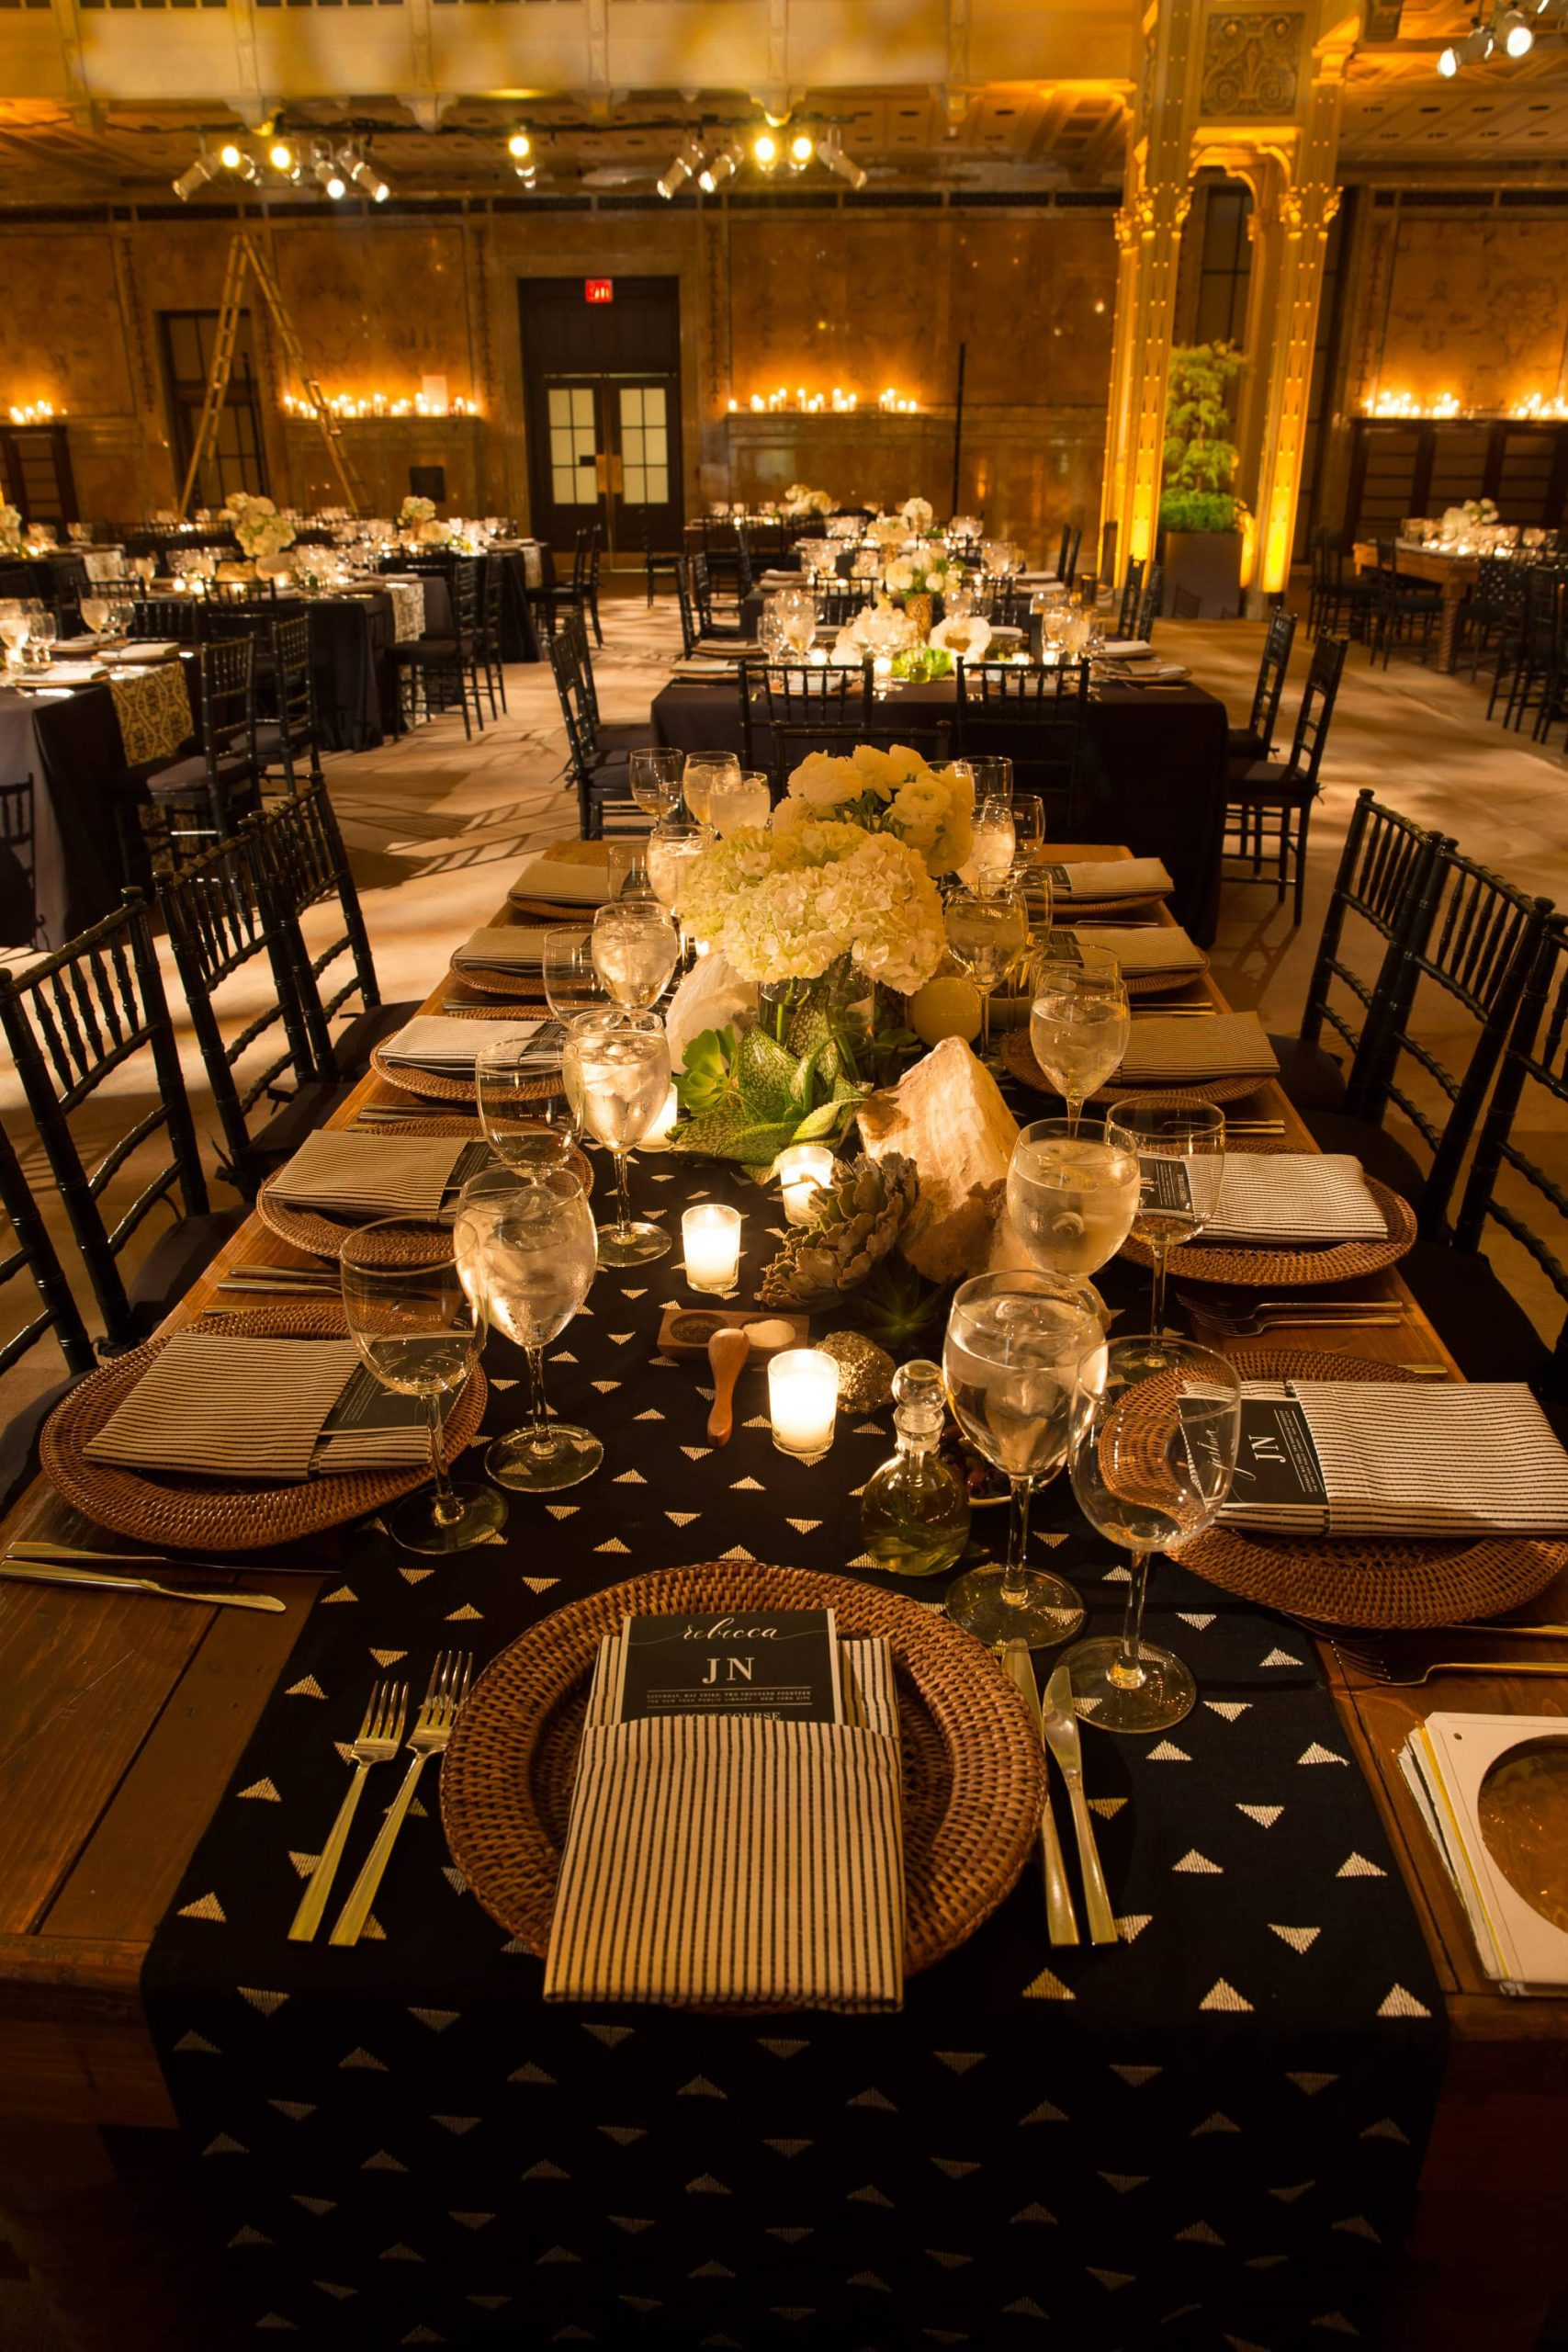 Black, white, and gold table decor for reception at this New York Public Library wedding | Photo by Genevieve de Manio